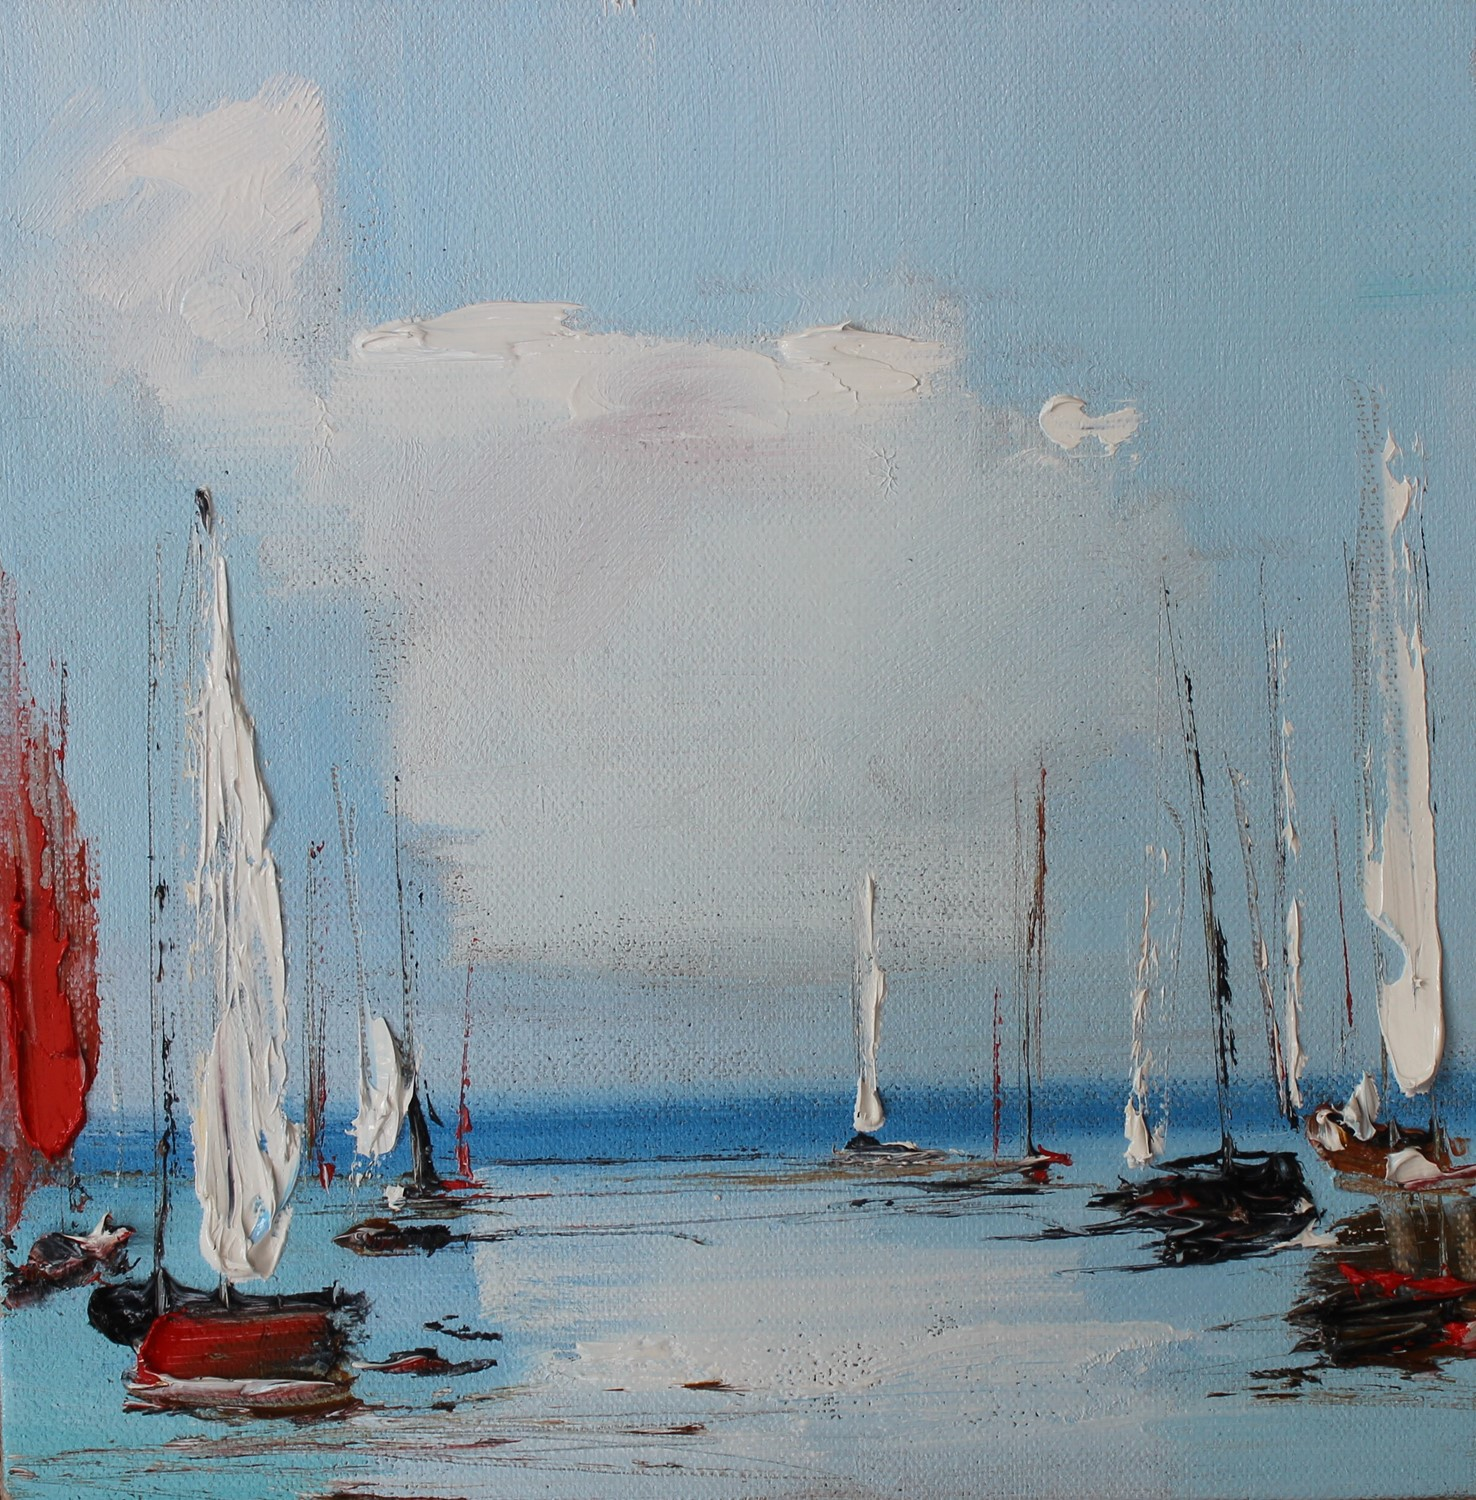 'Clouds and Boats' by artist Rosanne Barr